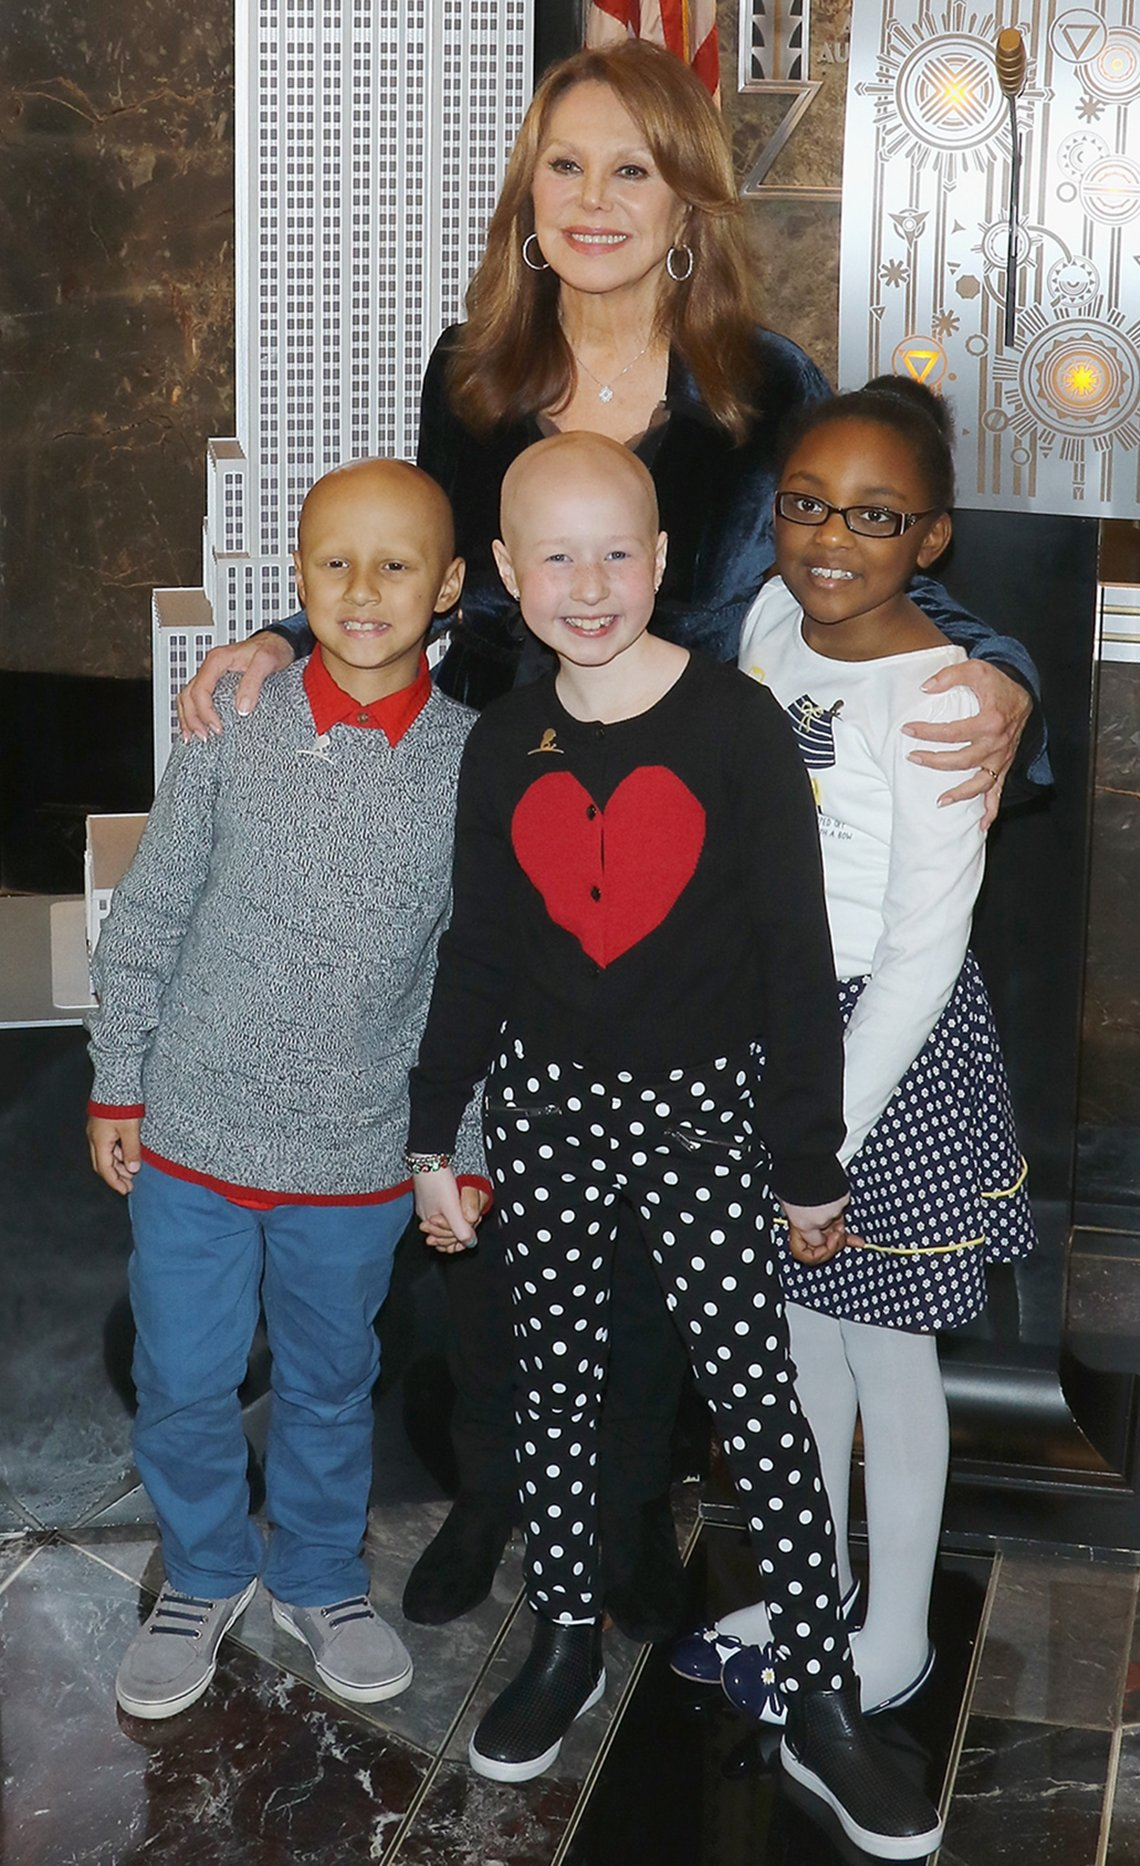 Marlo Thomas with children from St. Jude Children's Research Hospital.